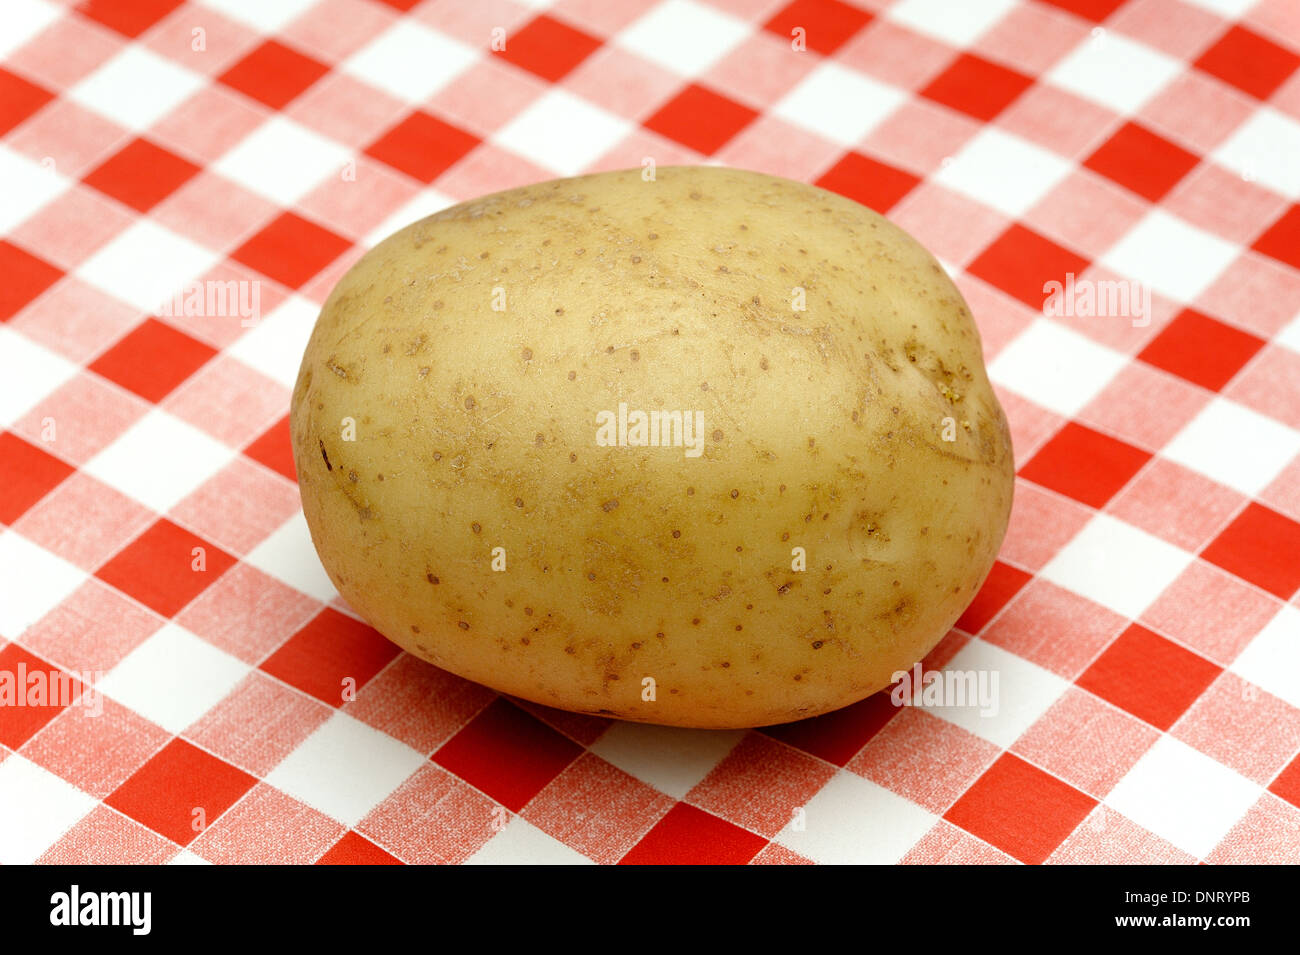 white potato on a red gingham tablecloth background - Stock Image